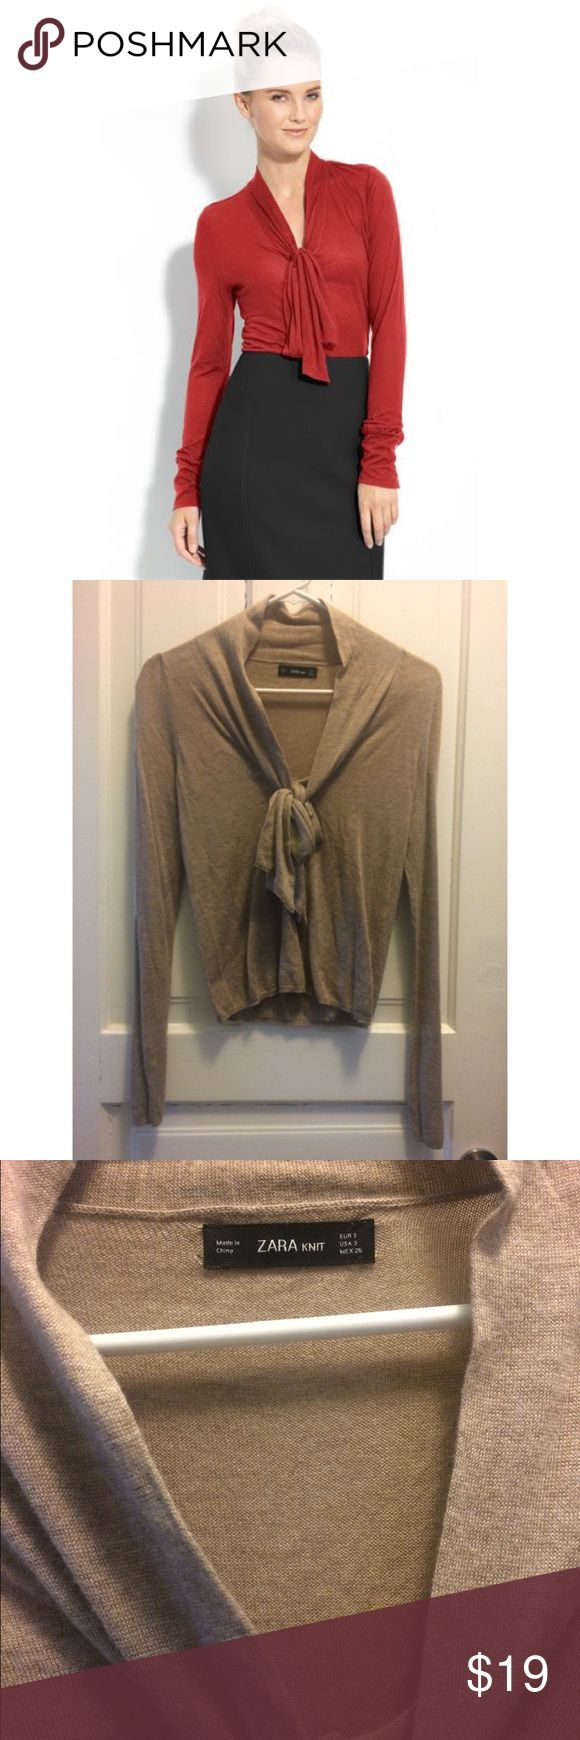 Zara sexy Front Bow secretary knit top Zara sexy Front Bow secretary knit top in tan/camel. Never worn. looks wrinkly bc i kept it in storage. Will steam iron upon sale. Very cute and sexy. Unfortunately too tight for me. (First pic is not of actual/not mine) Zara Tops Blouses